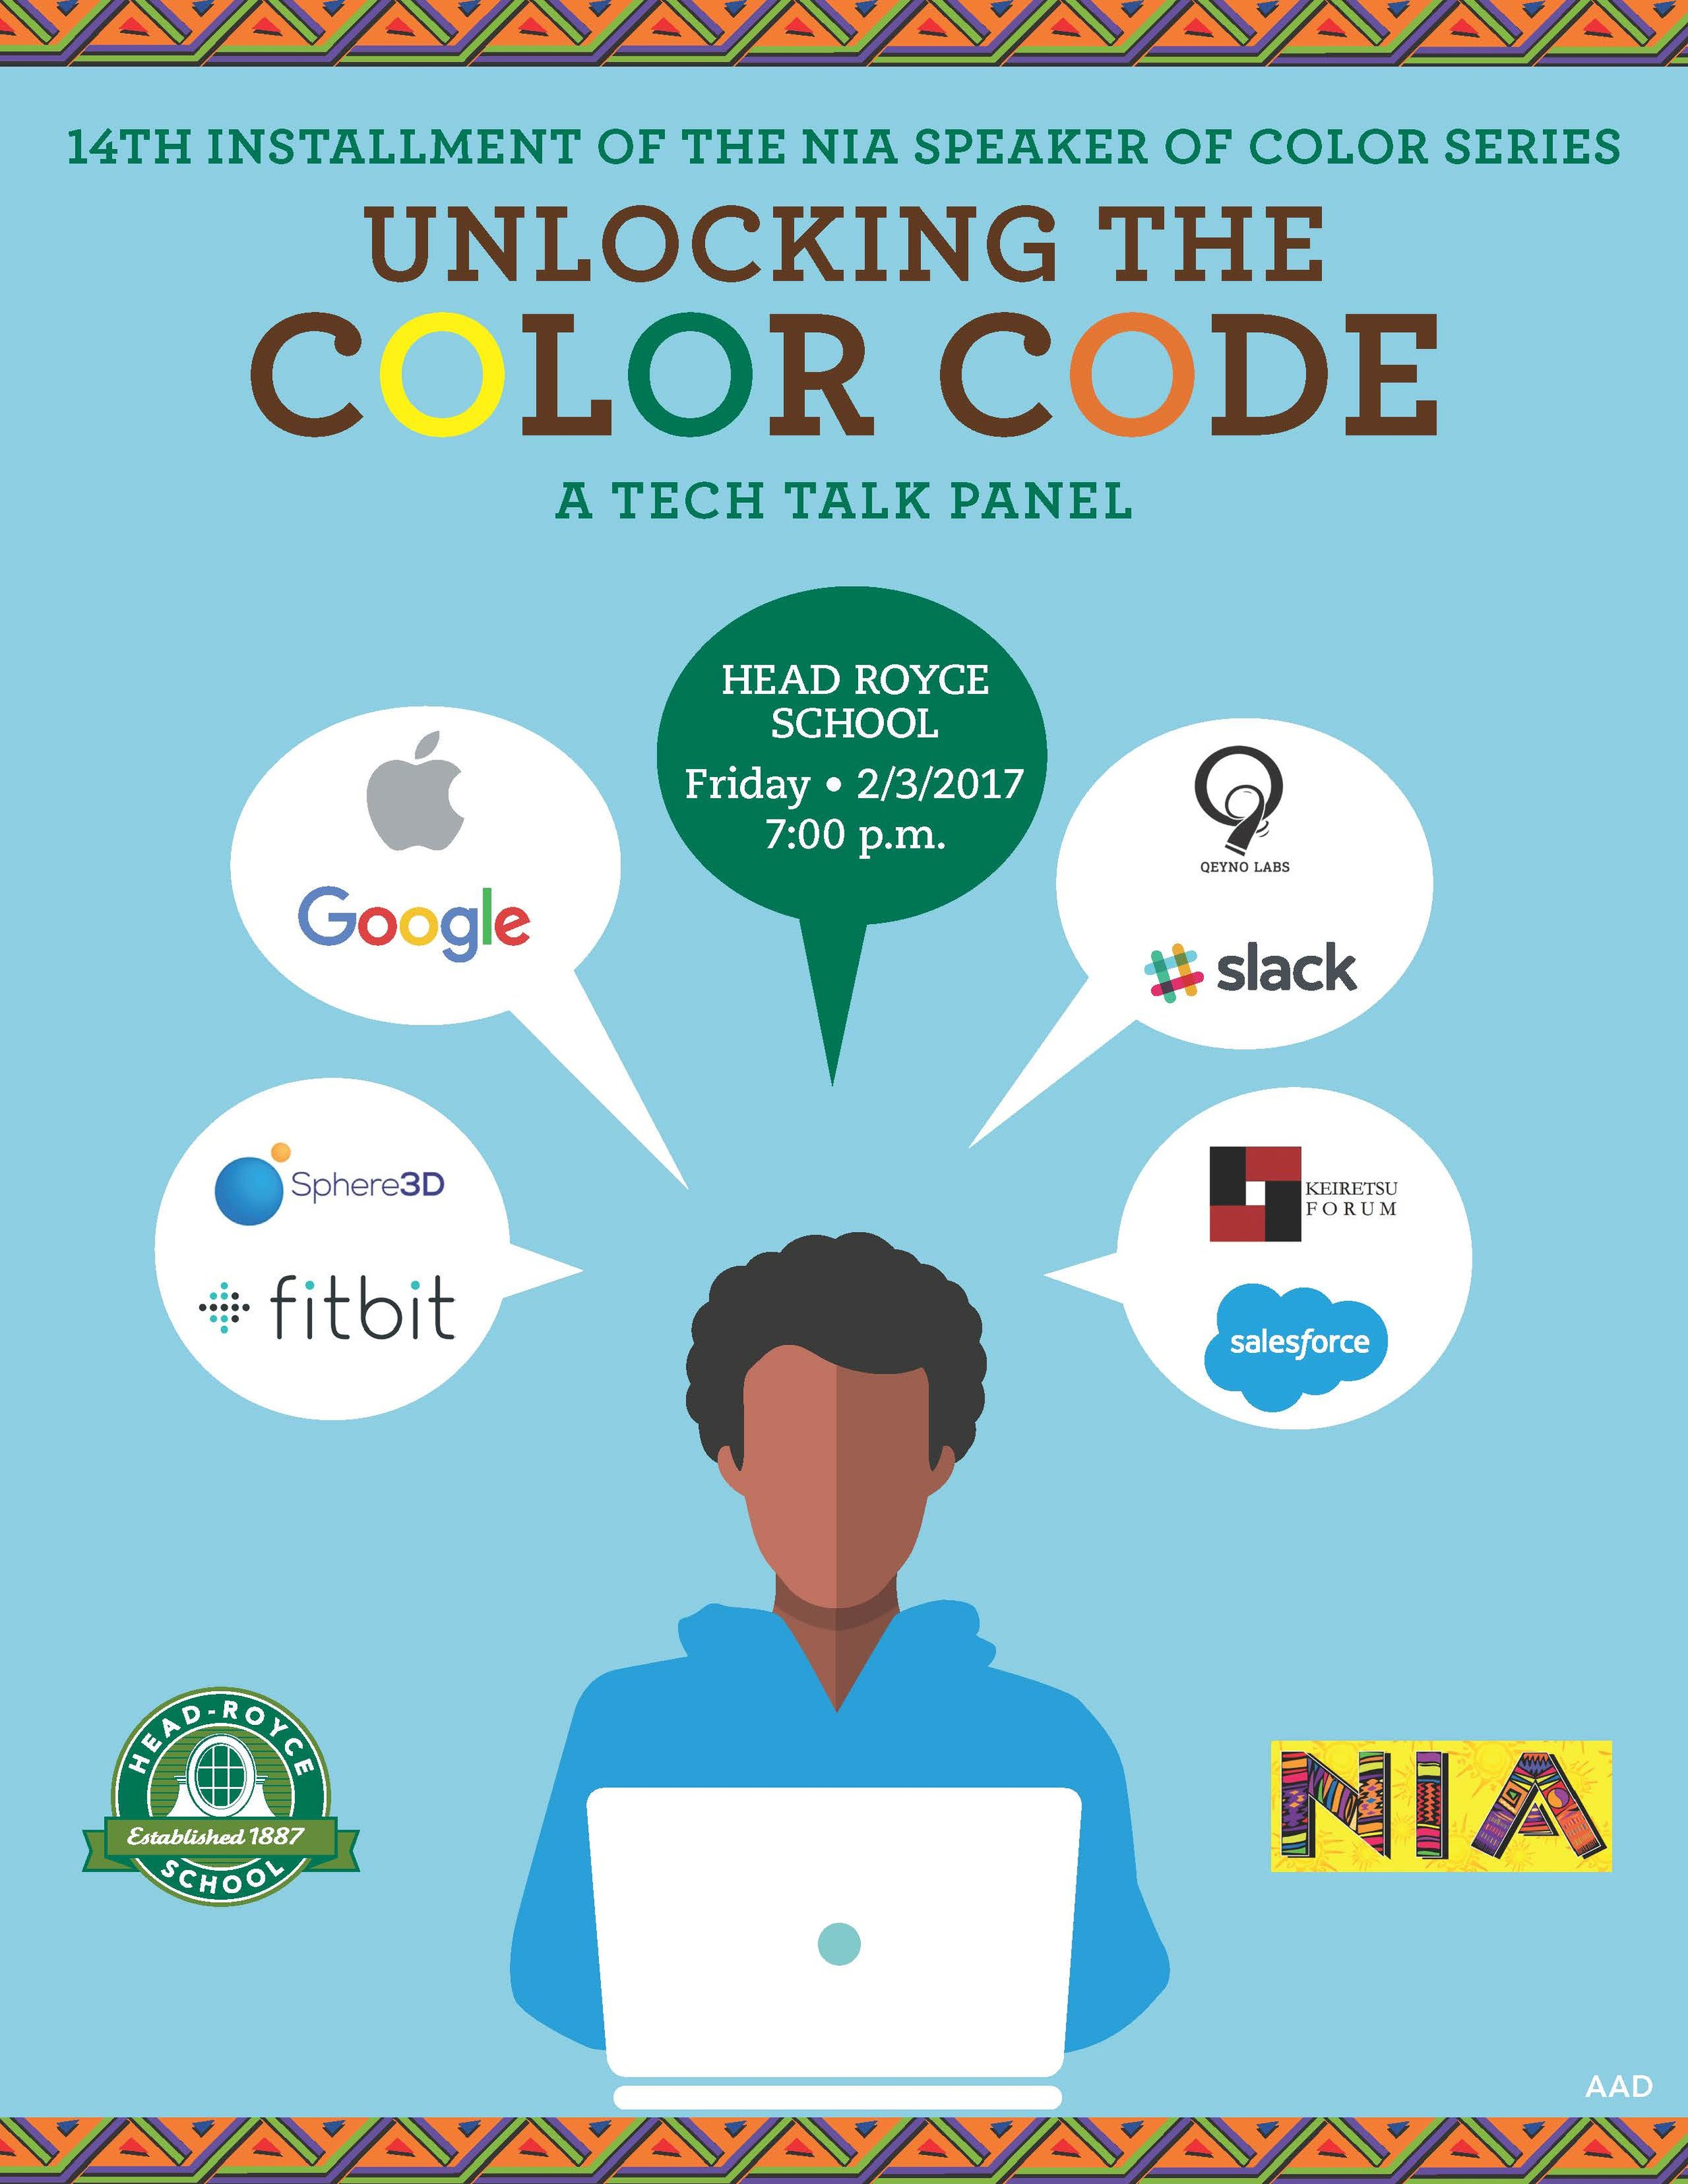 Nia 2016 - Unlocking the Color Code.jpg